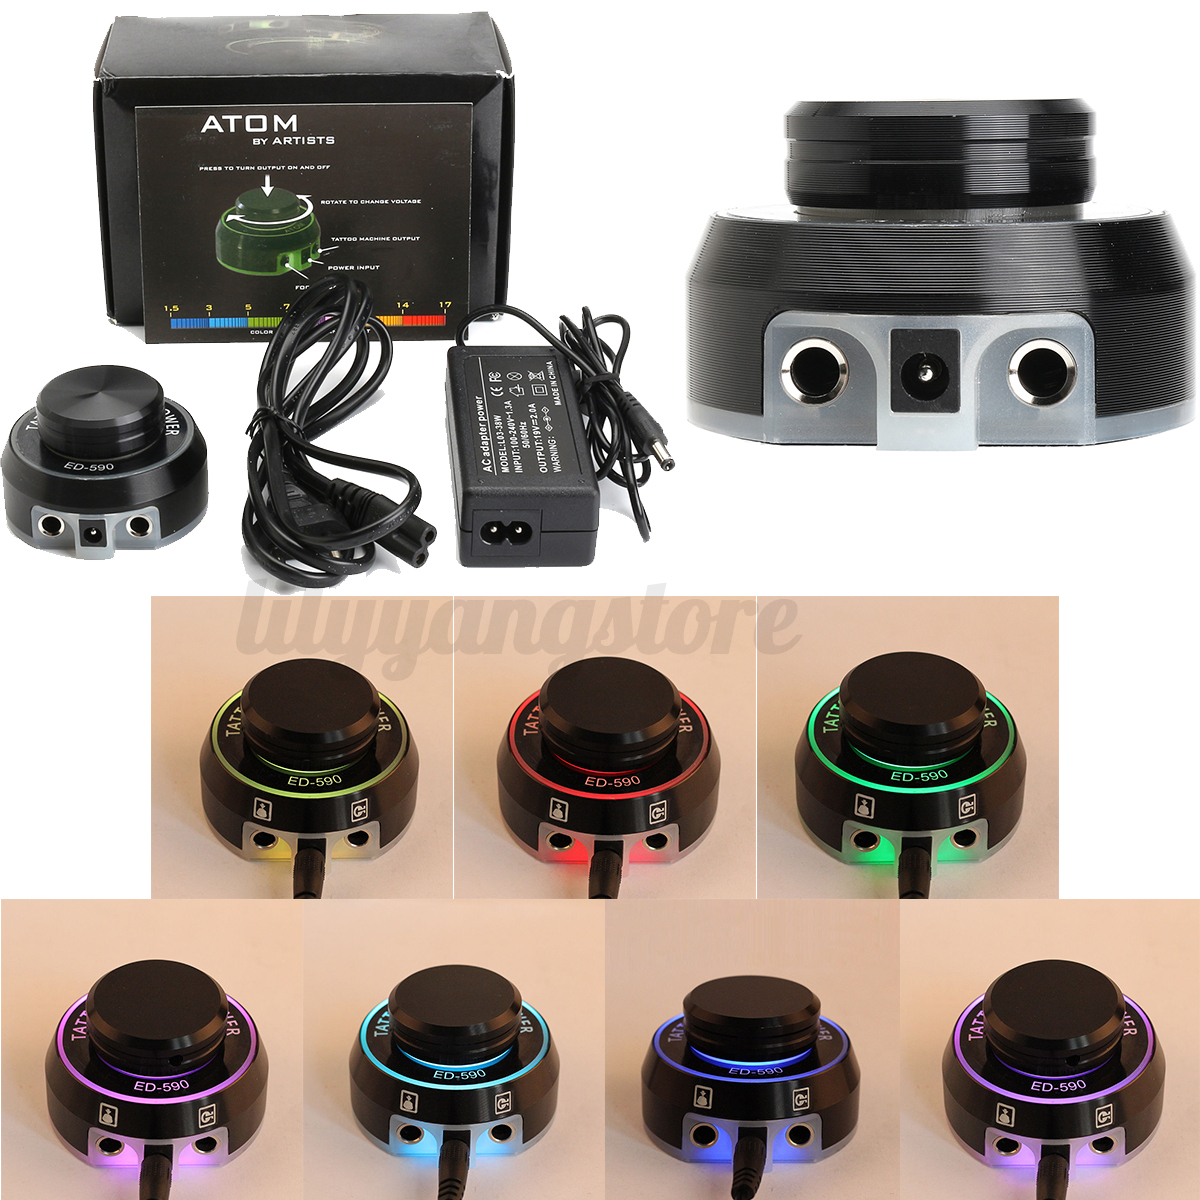 New style critical tattoo atom power supply for tattoo for Tattoo supplies ebay